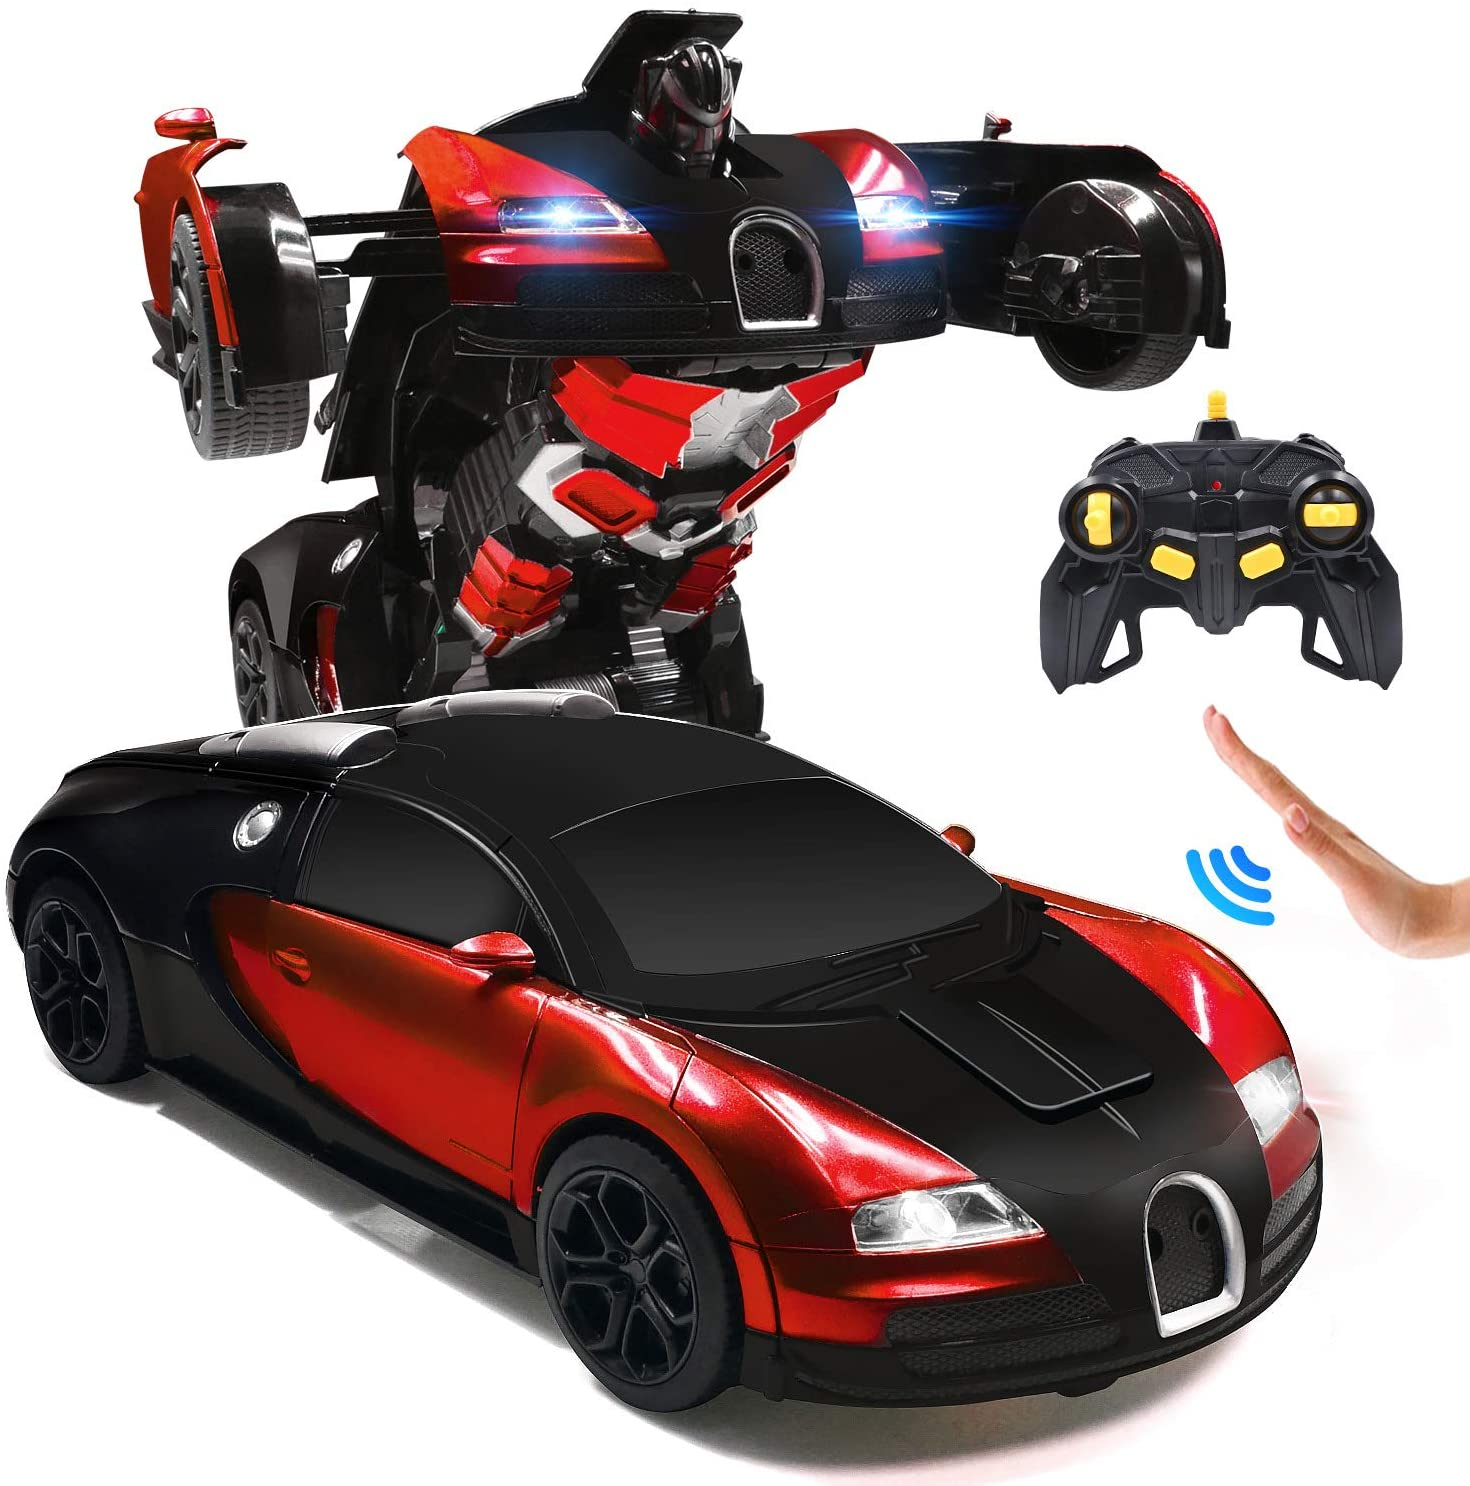 Gesture Control Transformer Car RC Cars Robot for Kids, Remote Control, Transform robot Gesture Sensing Toys with One Button Deformation and 360 ° Rotation, 1:14 Scale, Best Gift for Boys and Girls